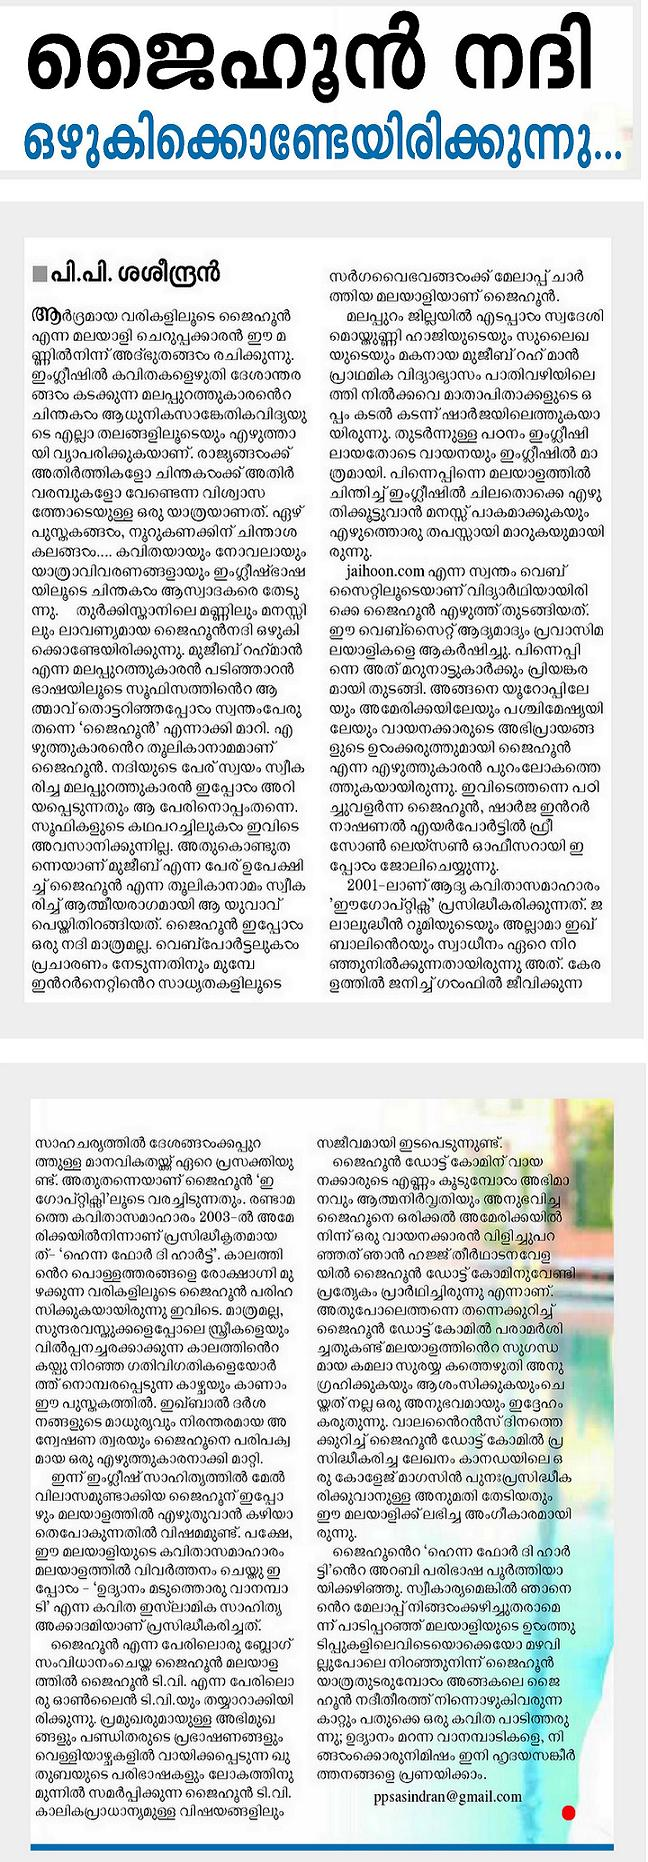 by PP Sasindran, Published in Mathrubhumi Gulf Feature, July 12 2013